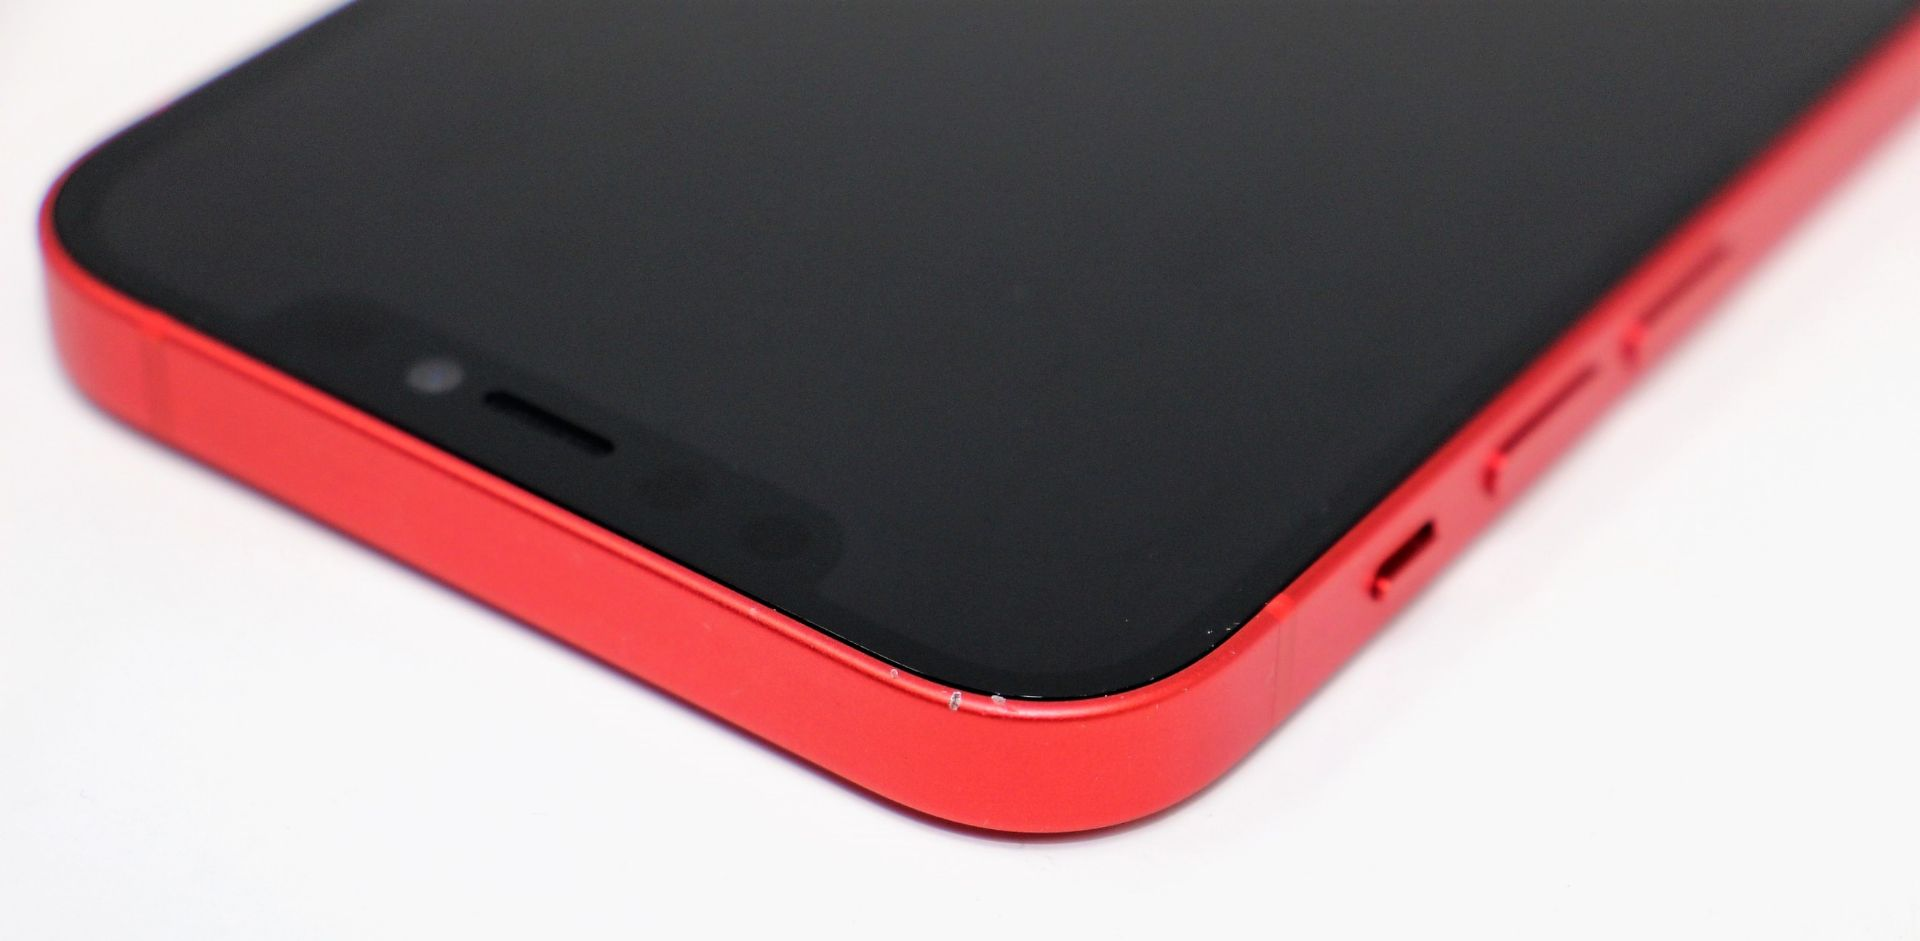 A pre-owned Apple iPhone 12 (Global/A2403) 128GB in Red (FRP clear. Some scratches to screen glass - Image 6 of 16